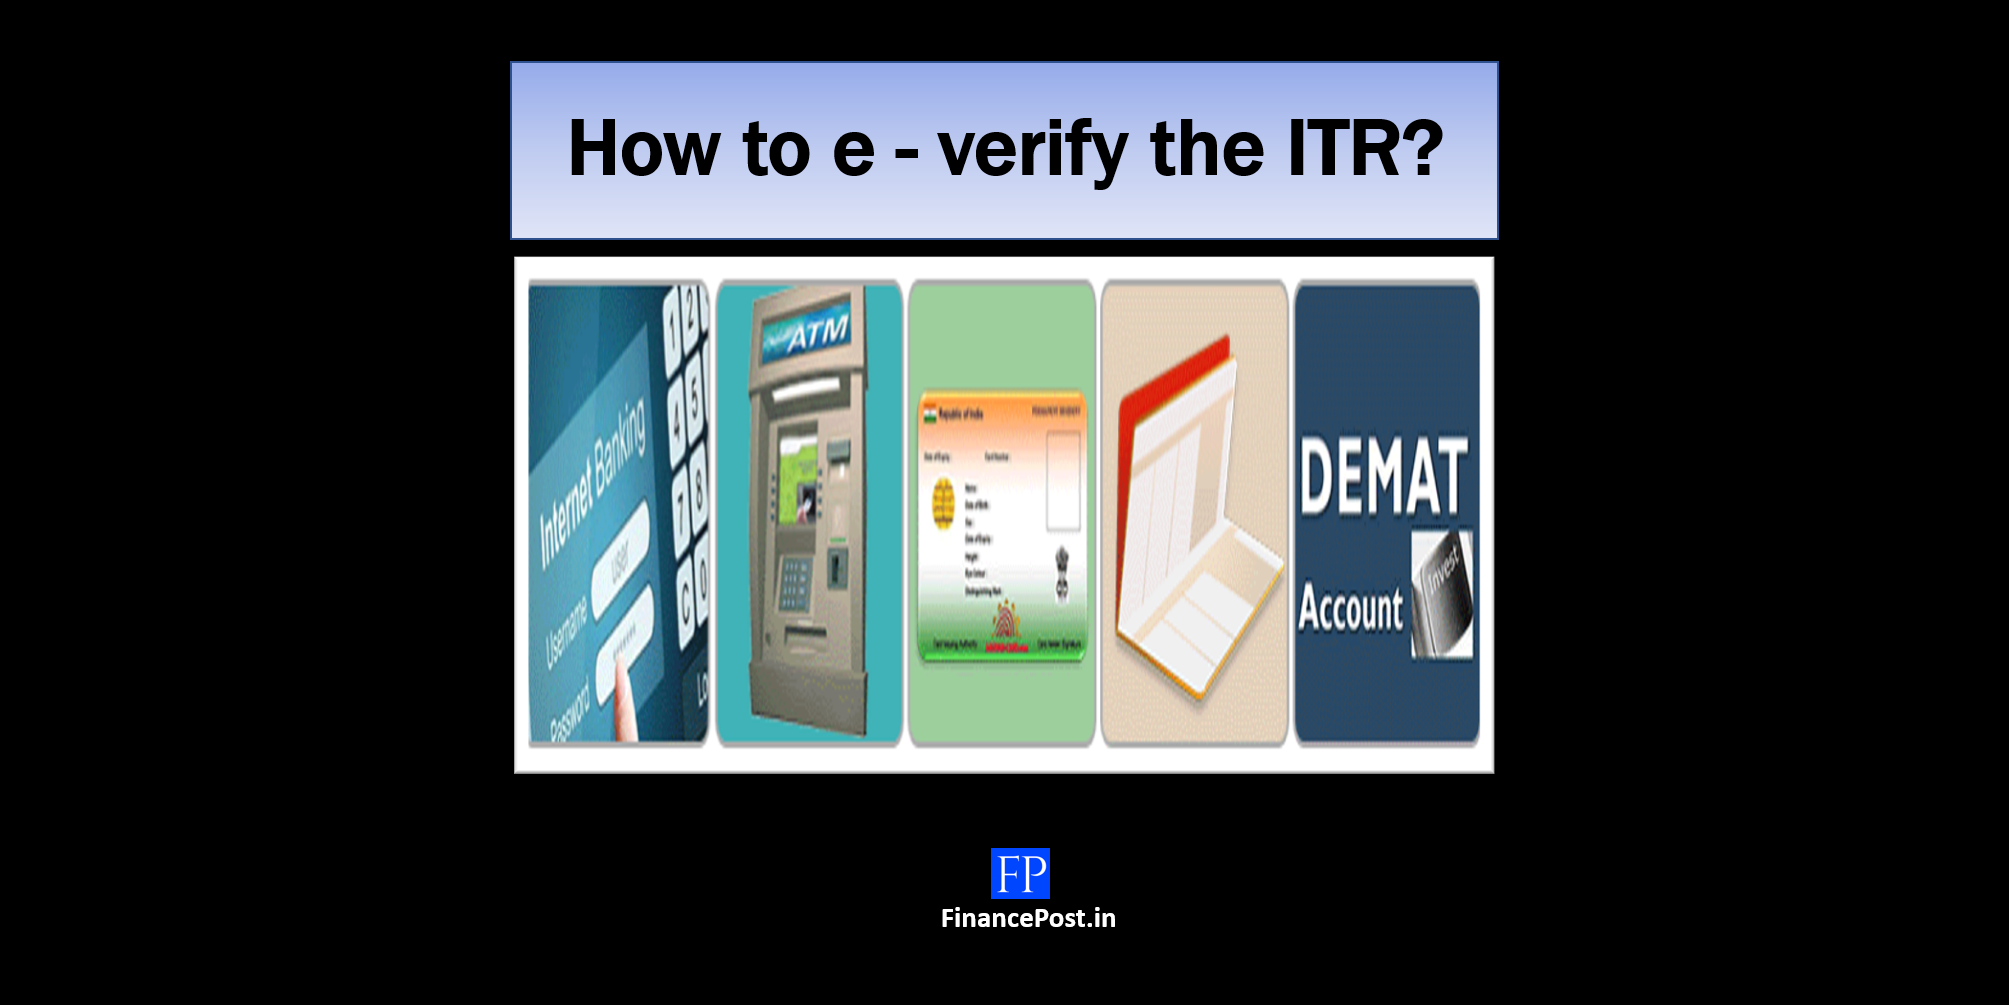 how to e-verify the ITR